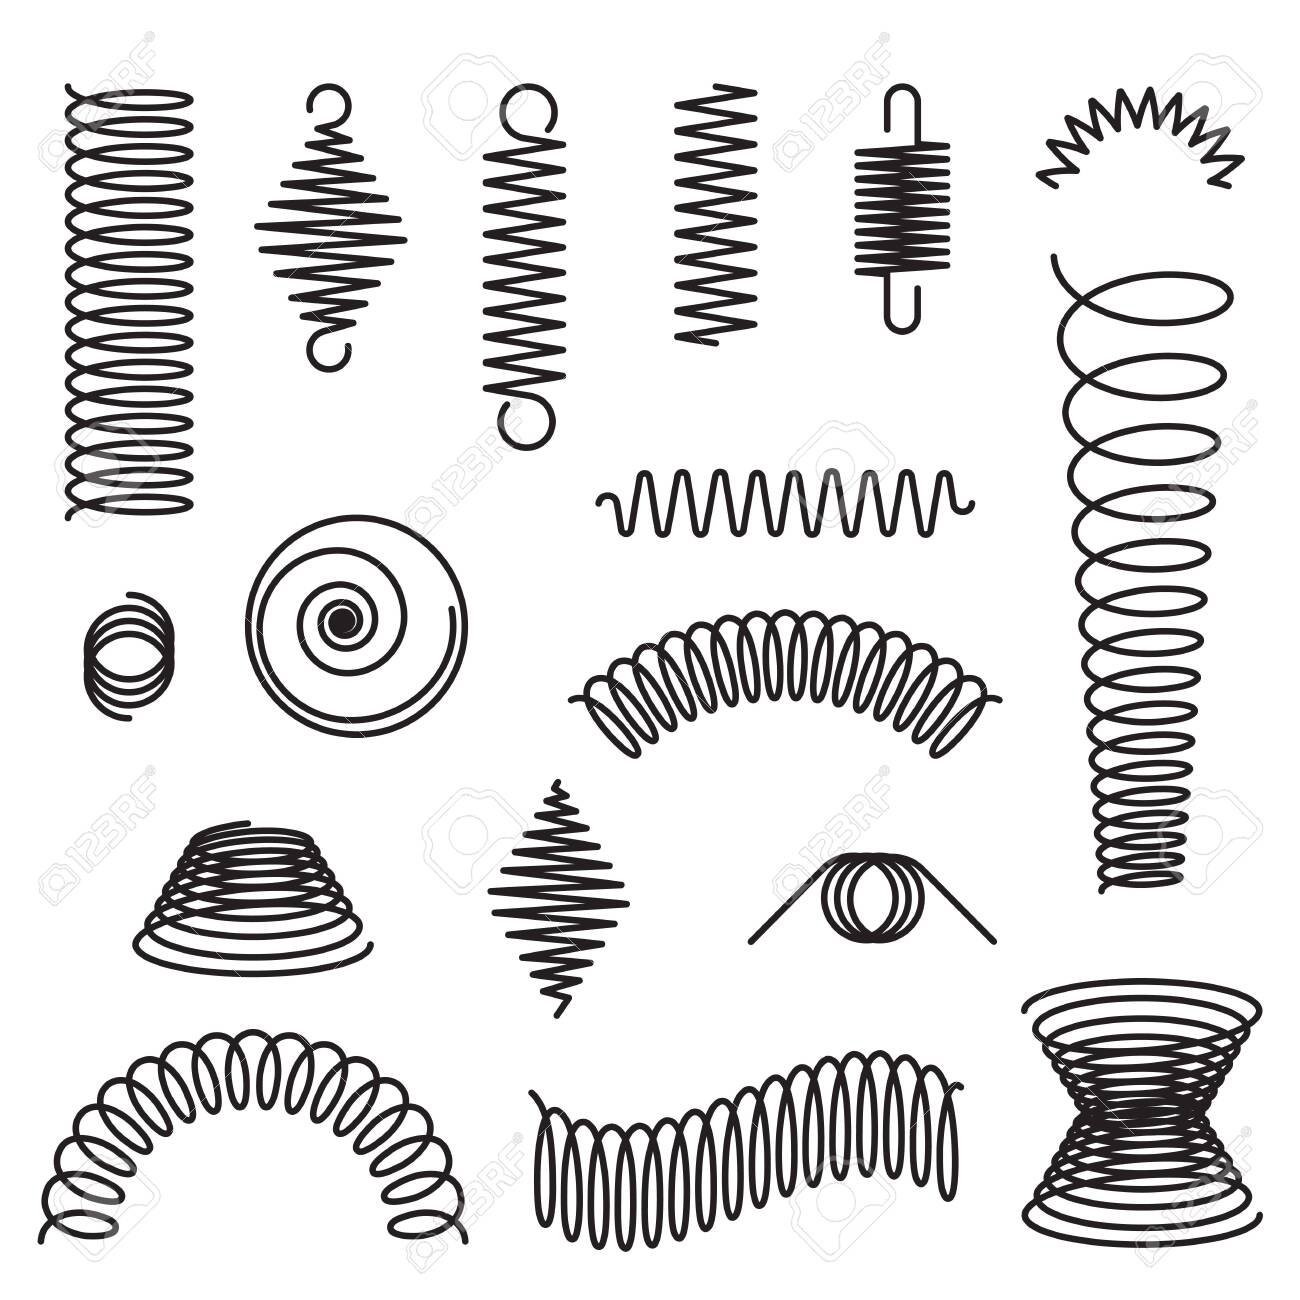 Metal spirals set. Flexible spring, industrial coil, springy curve. Vector illustrations for compression, equipment, engineering topics - 150486053